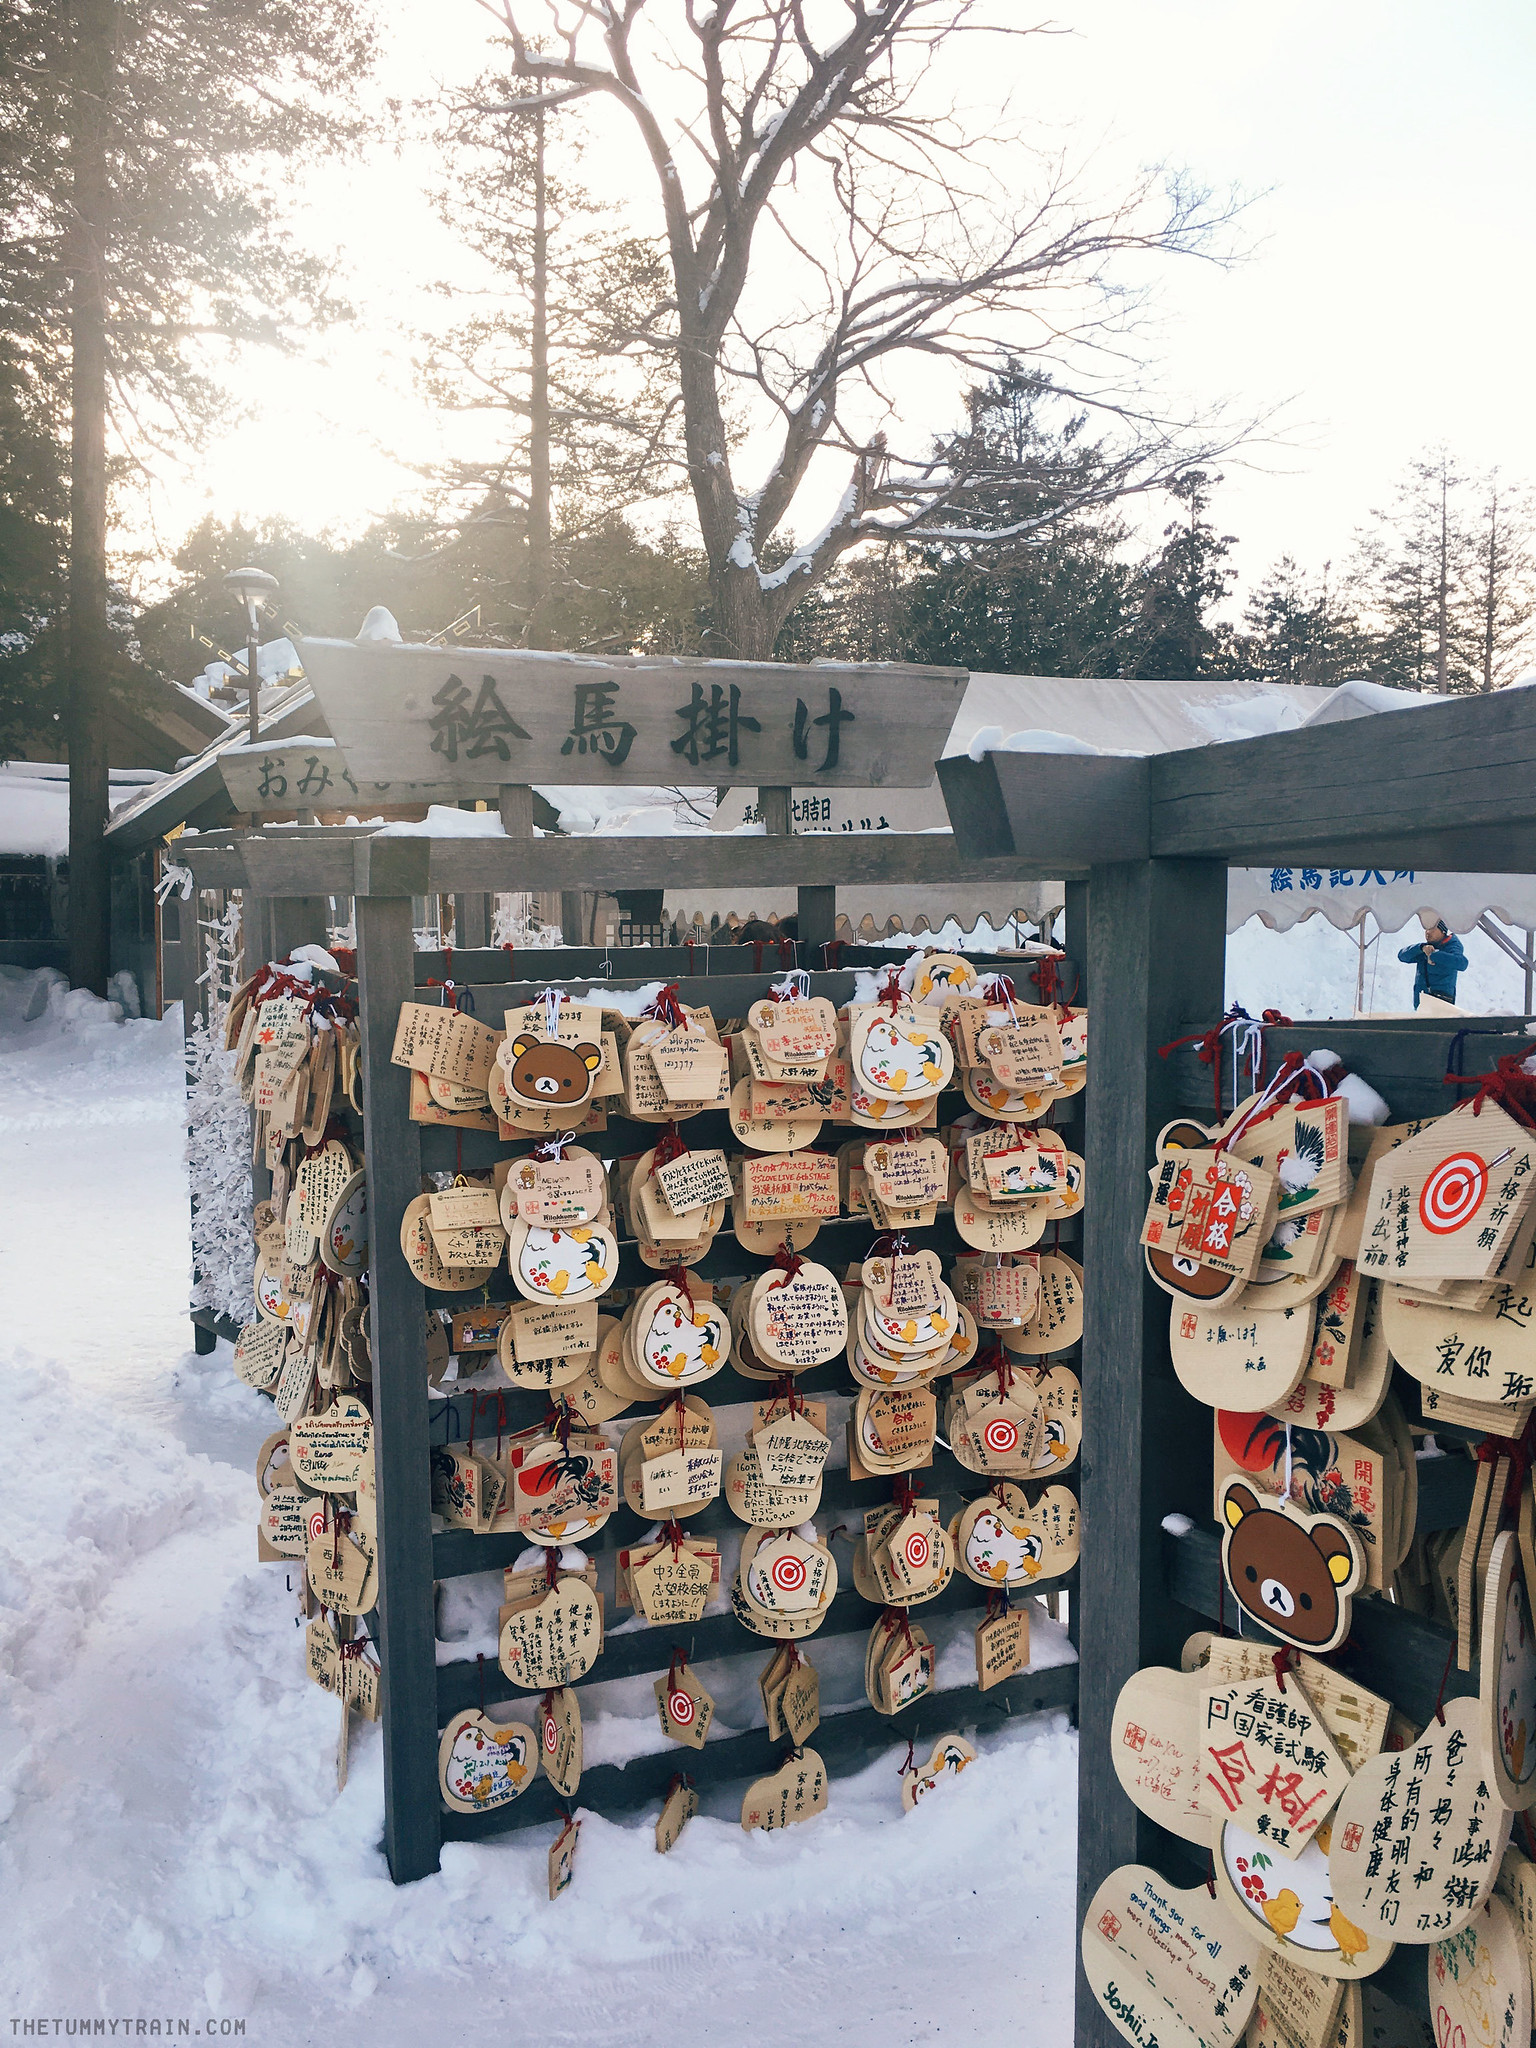 32915721765 1776bd3273 k - Sapporo Snow And Smile: 8 Unforgettable Winter Experiences in Sapporo City